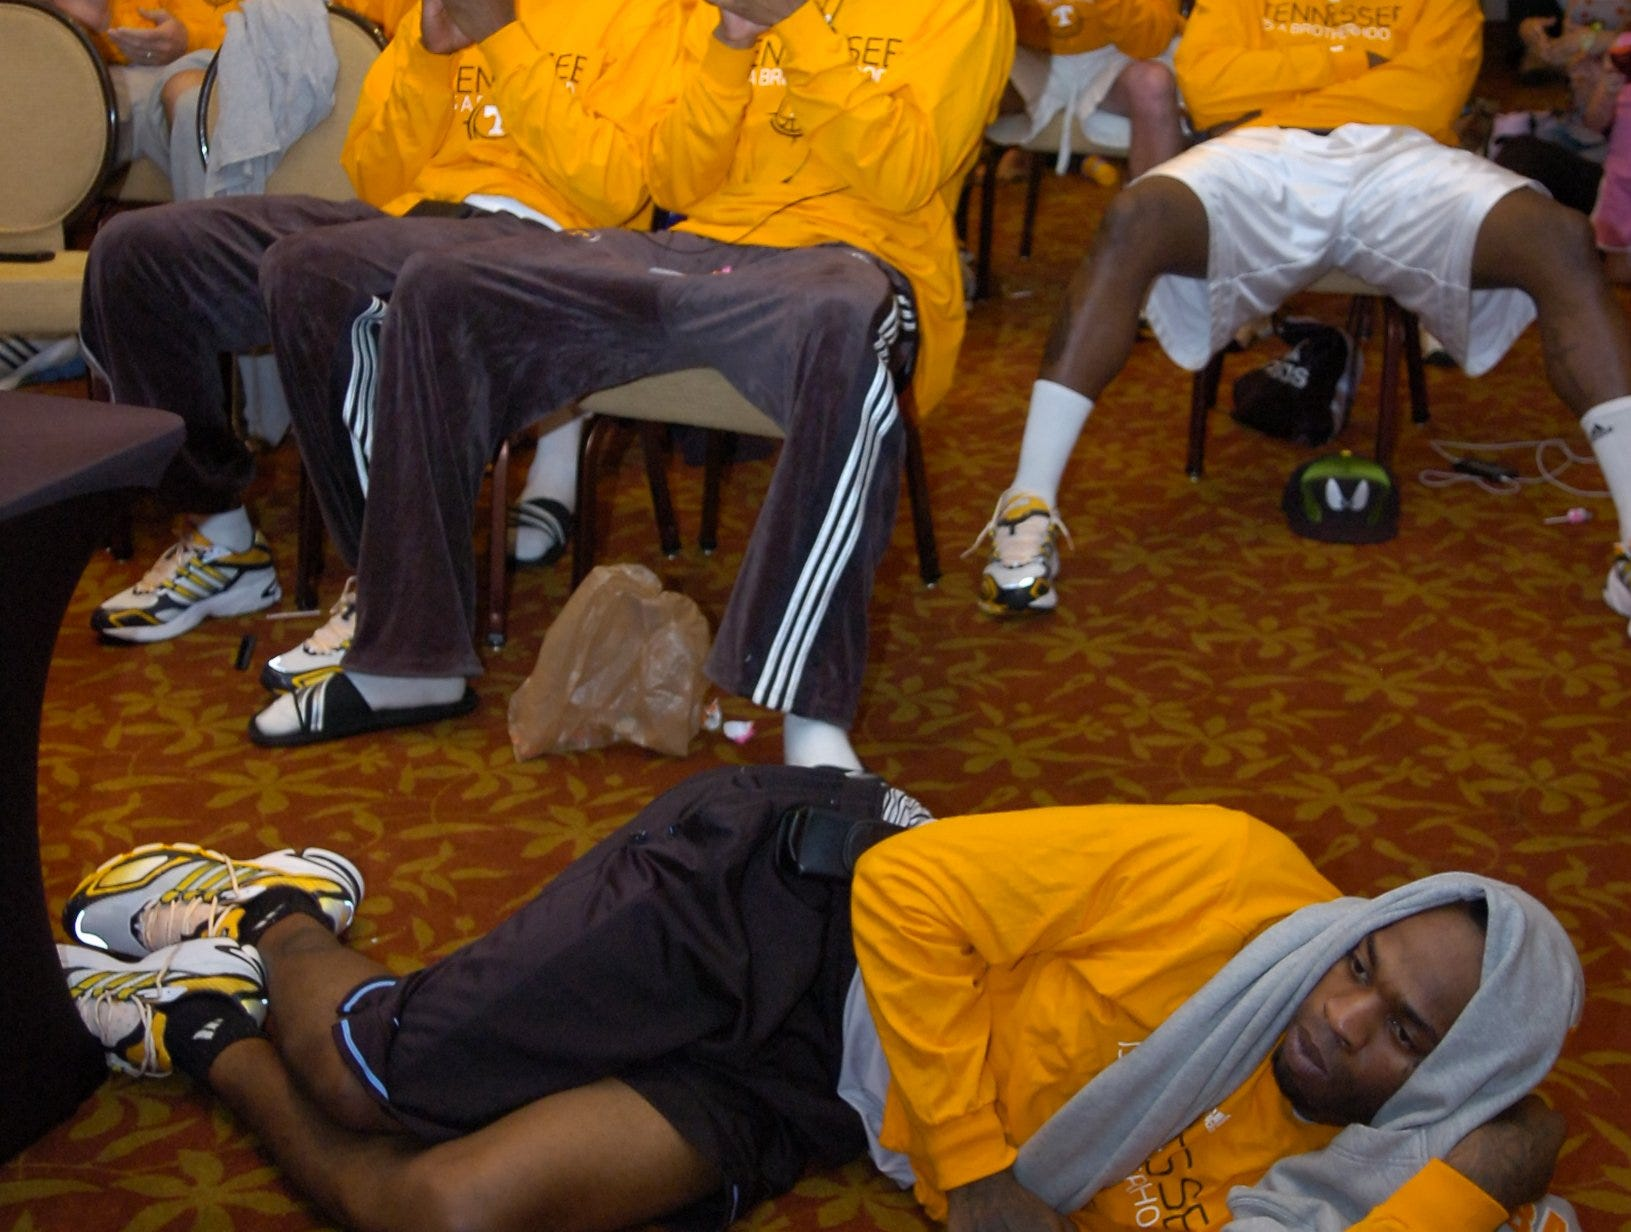 The Tennessee basketball team watches the NCAA tournament selection show on CBS and learns they ate a ninth seed and will face Oklahoma State in Dayton, OH in the first round of play on Friday.